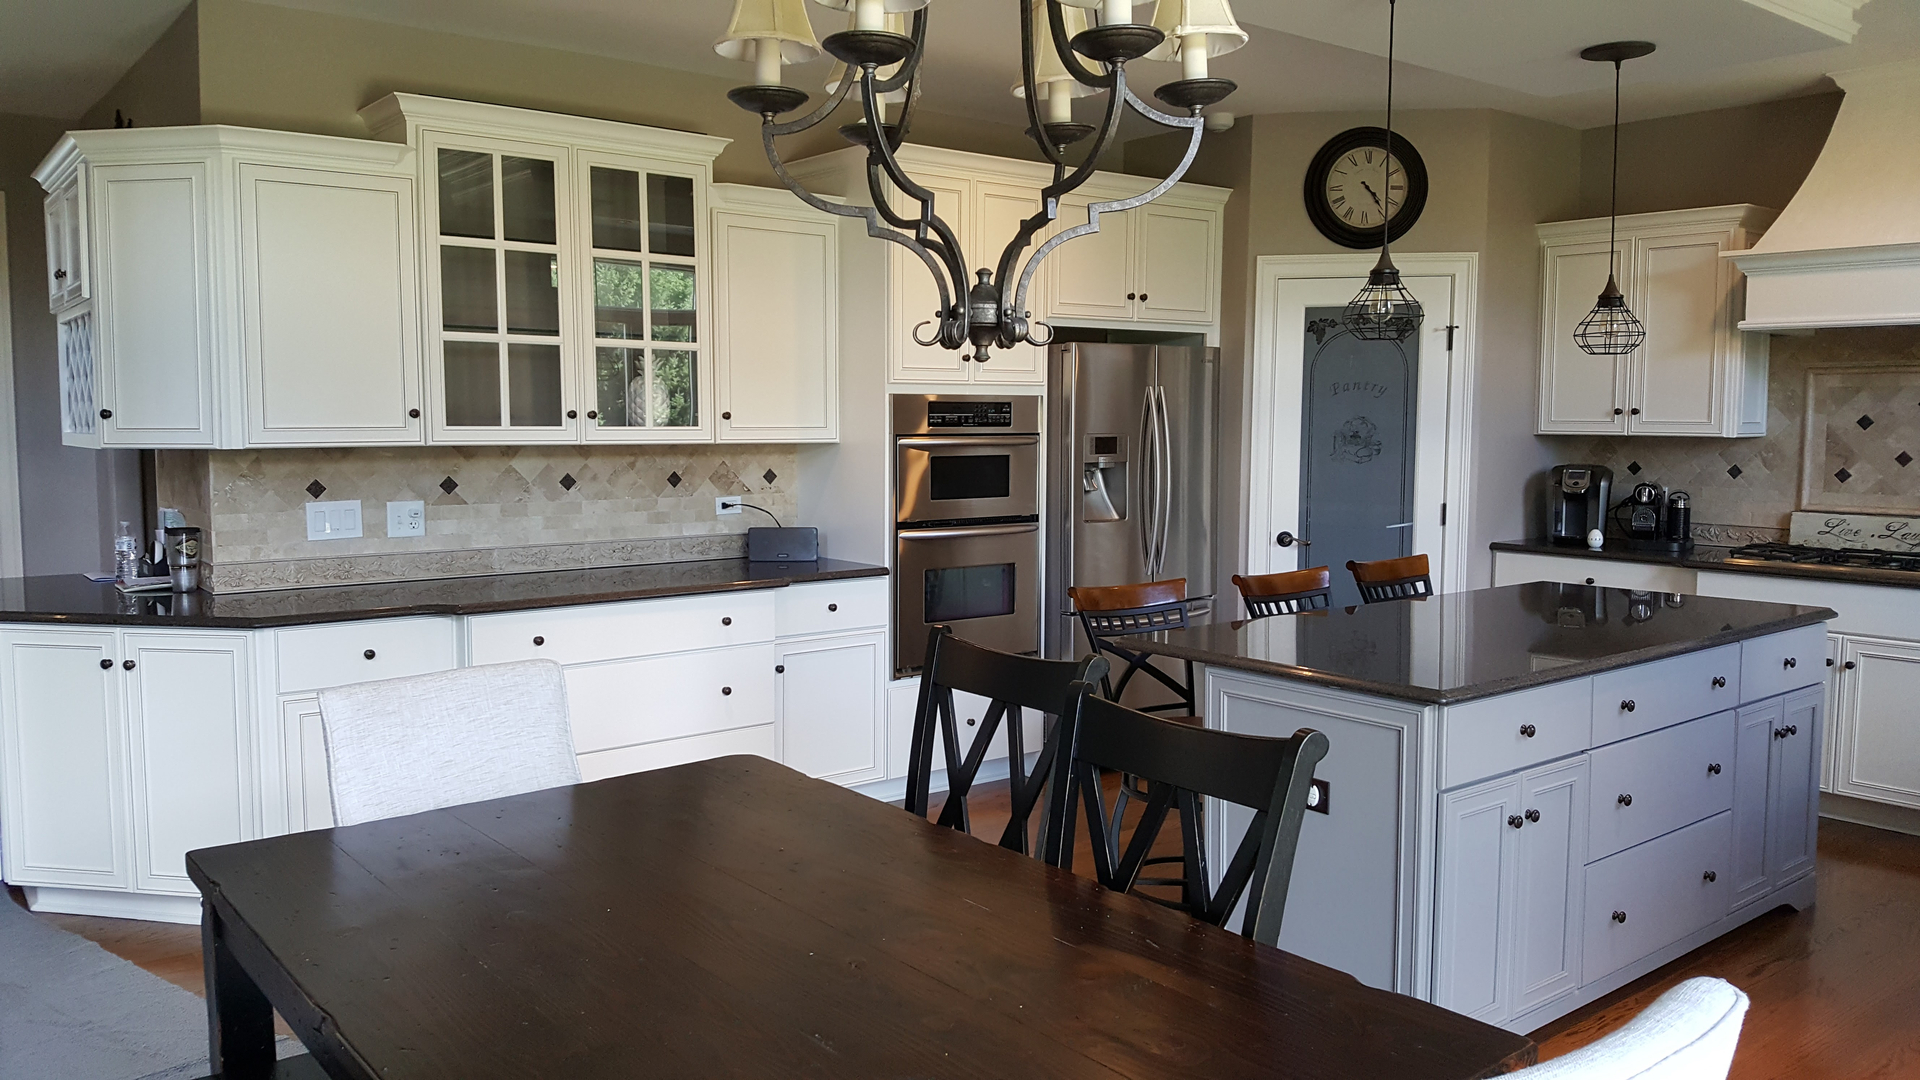 Kitchen cabinets in south elgin il - South Elgin Il Cabinet Refinishing